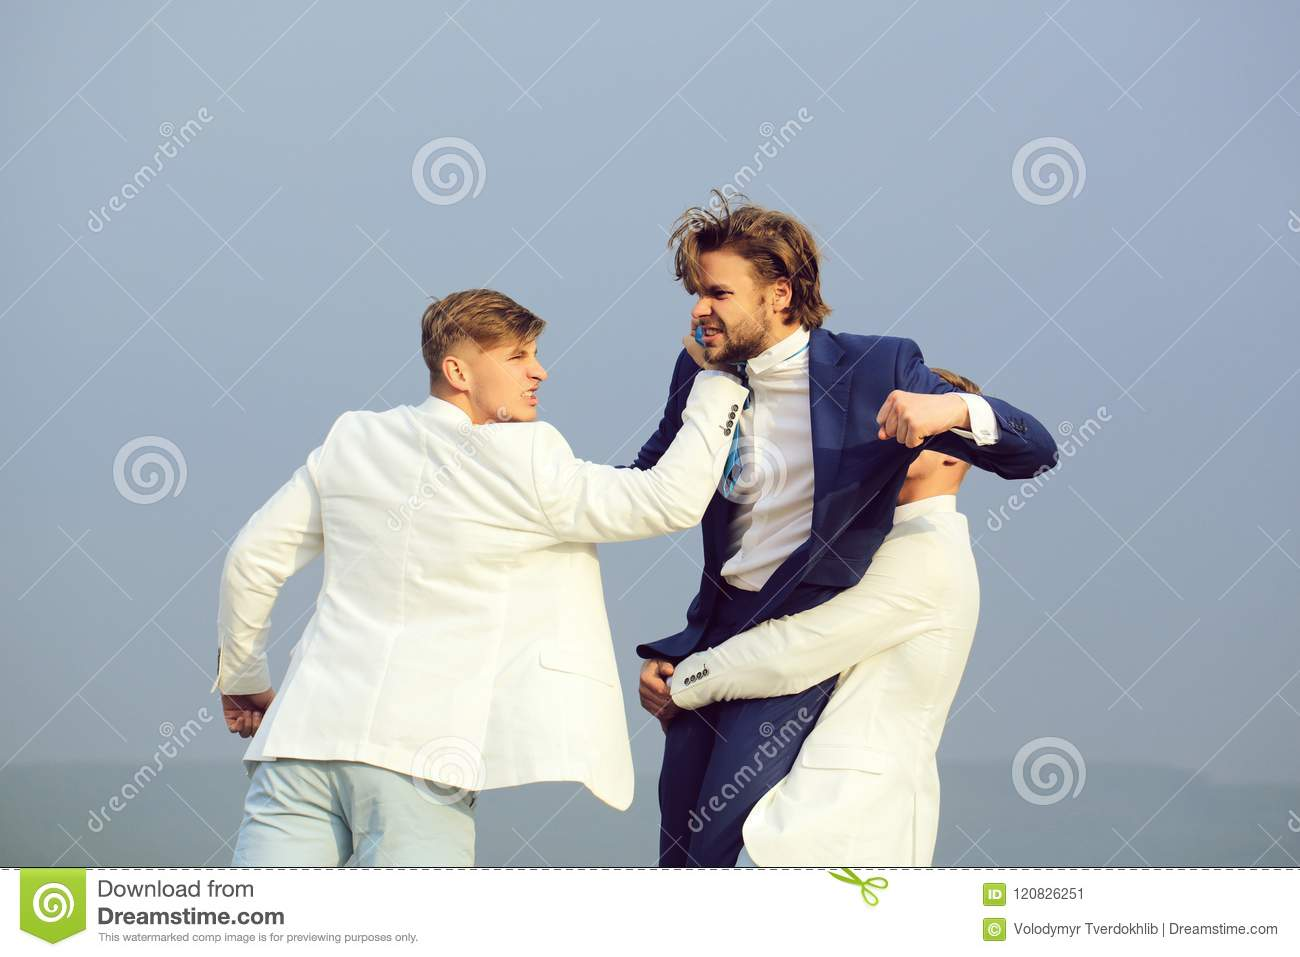 Men`s showdown. pressure and raidership, business conflict, interest conflict, boss and employee